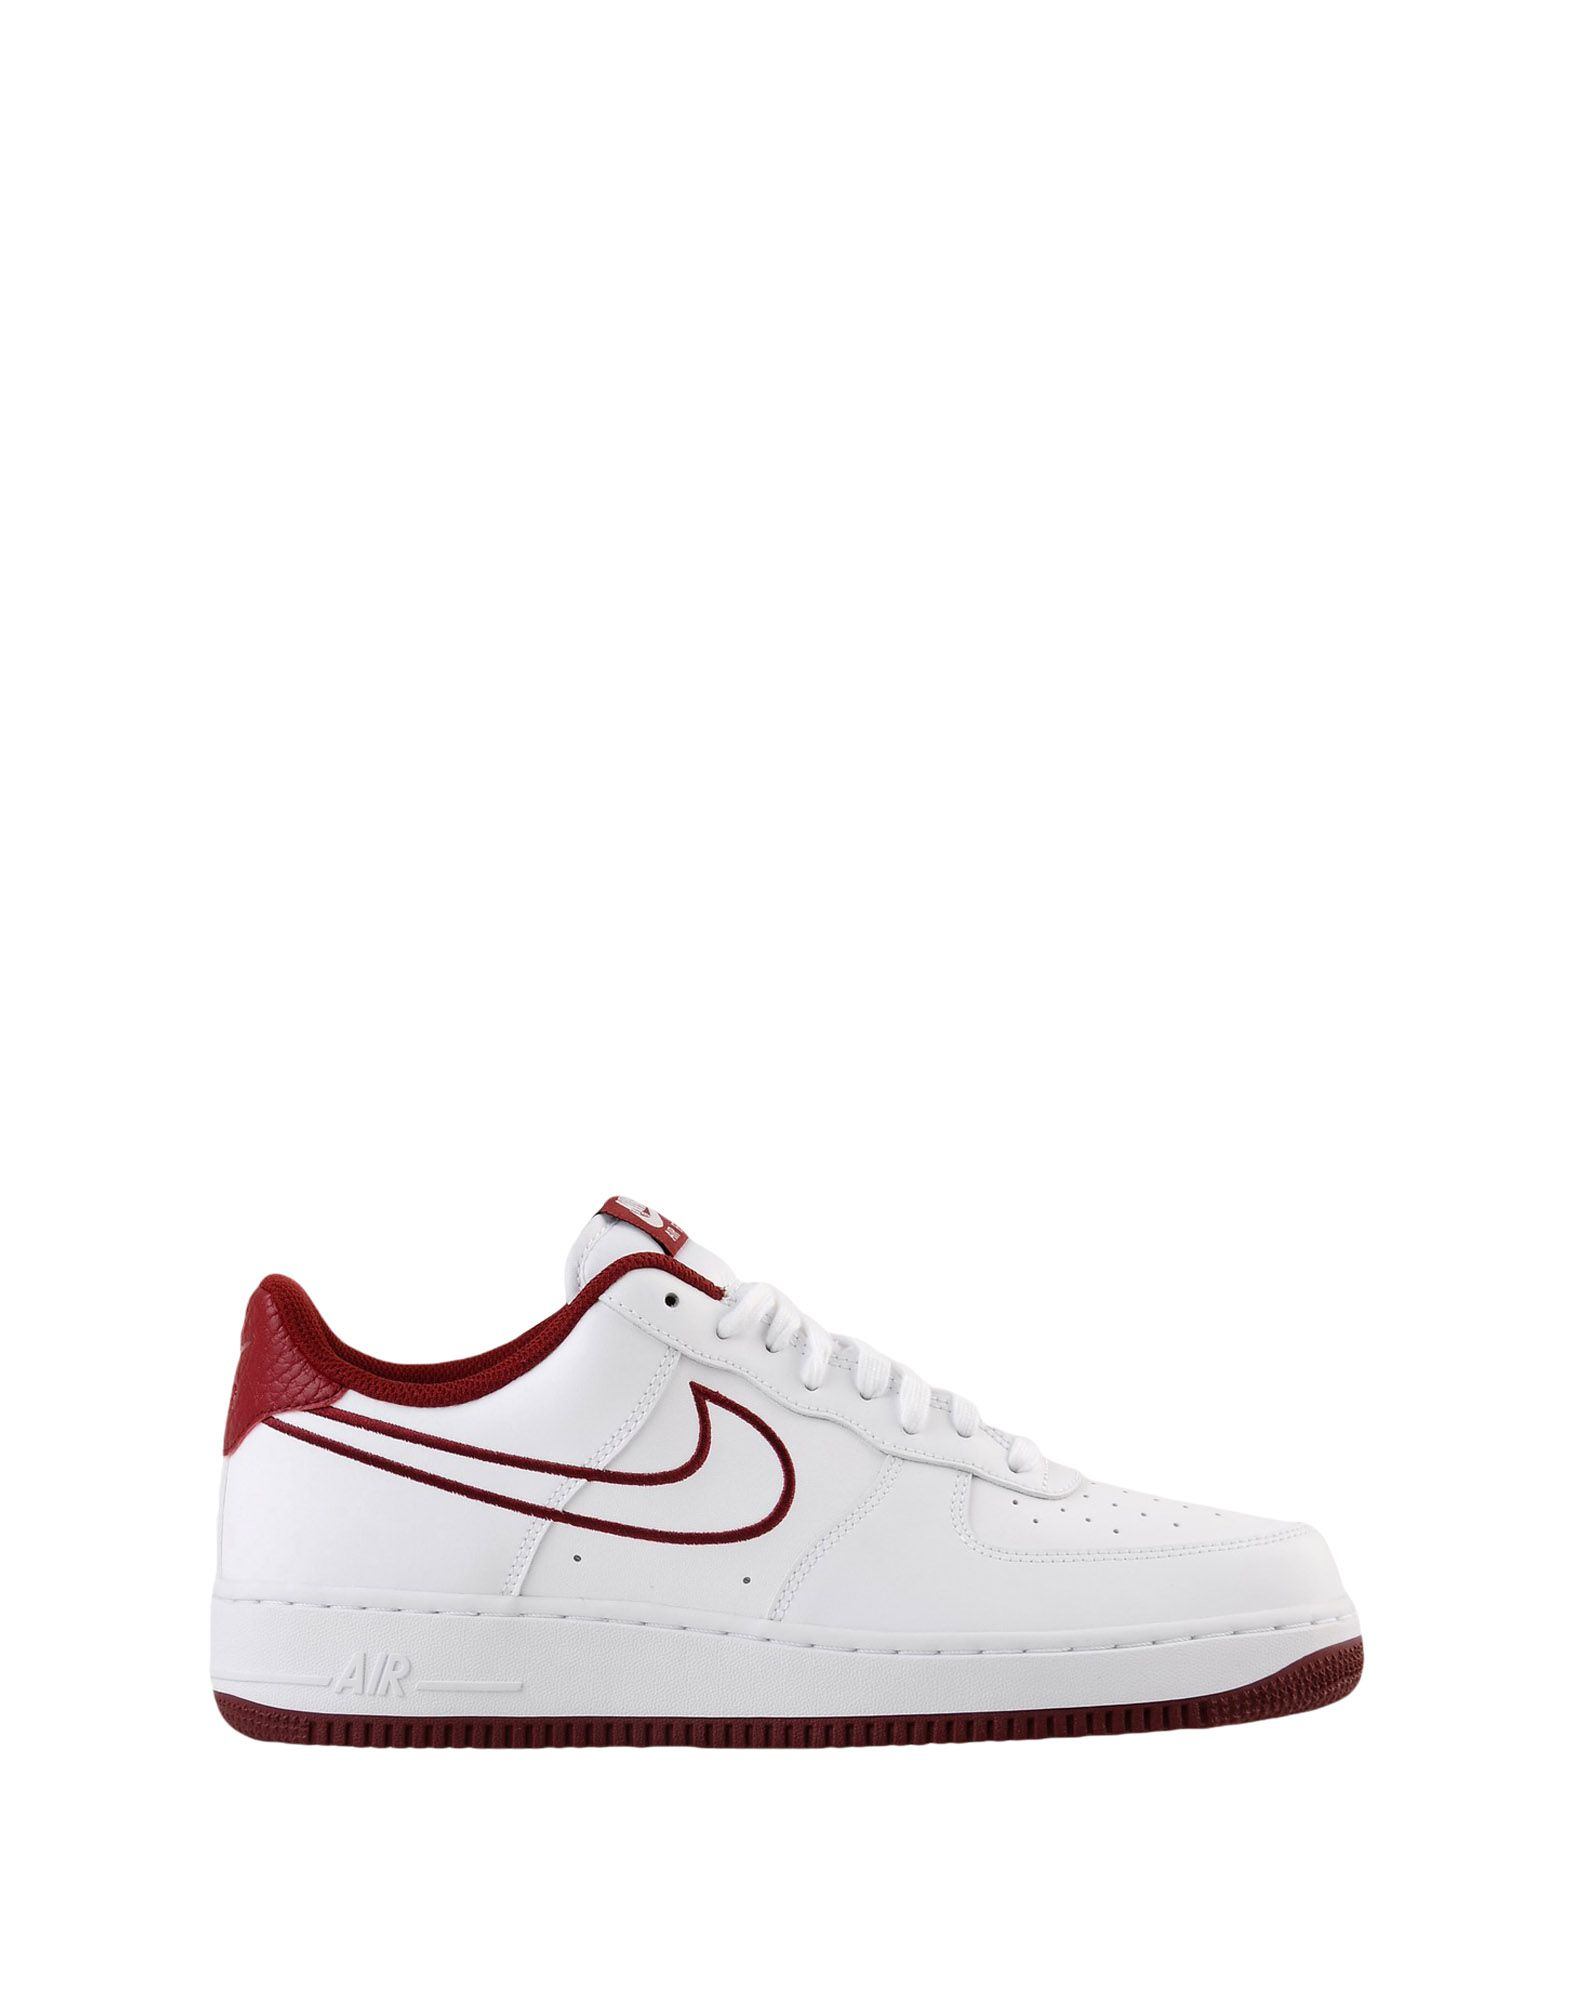 Sneakers Nike Air Force 1 '07 Leather - Uomo - 11545236FR